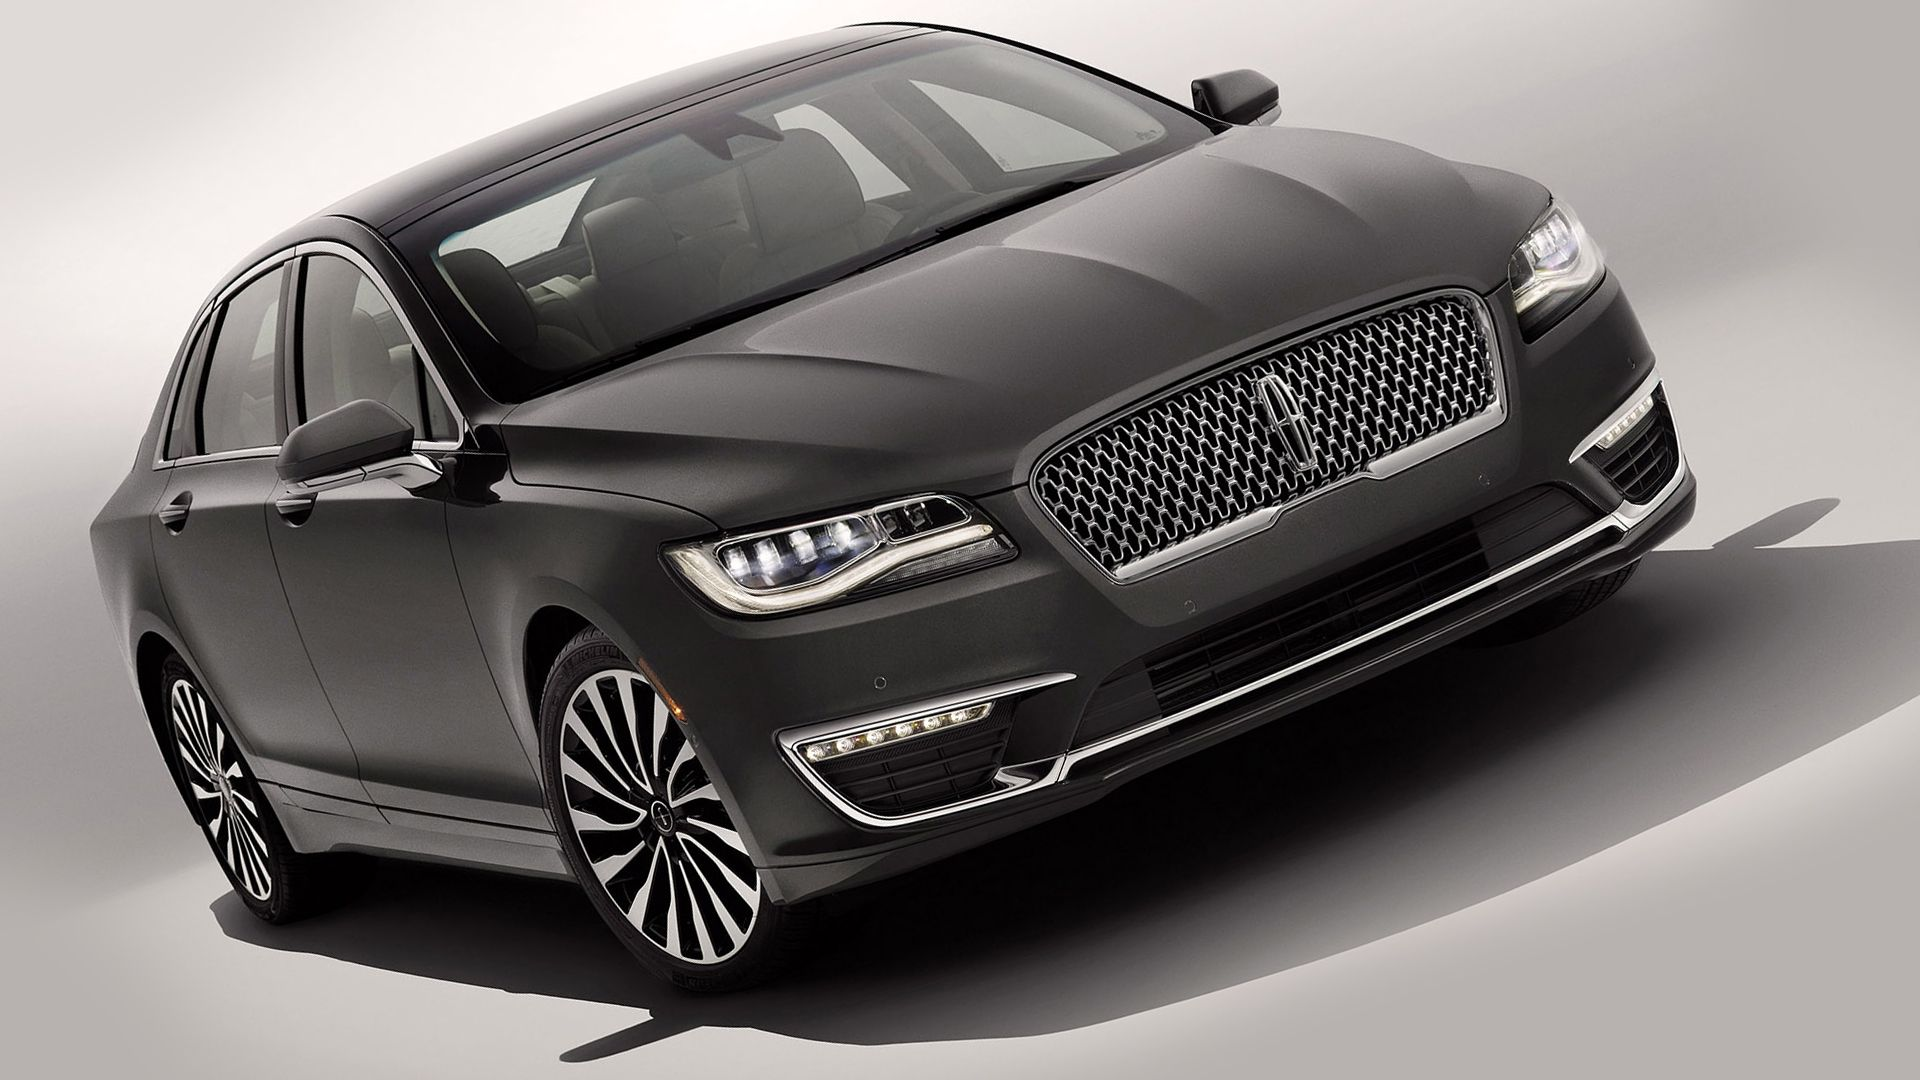 New 2018 Lincoln MKZ Release Date and Price